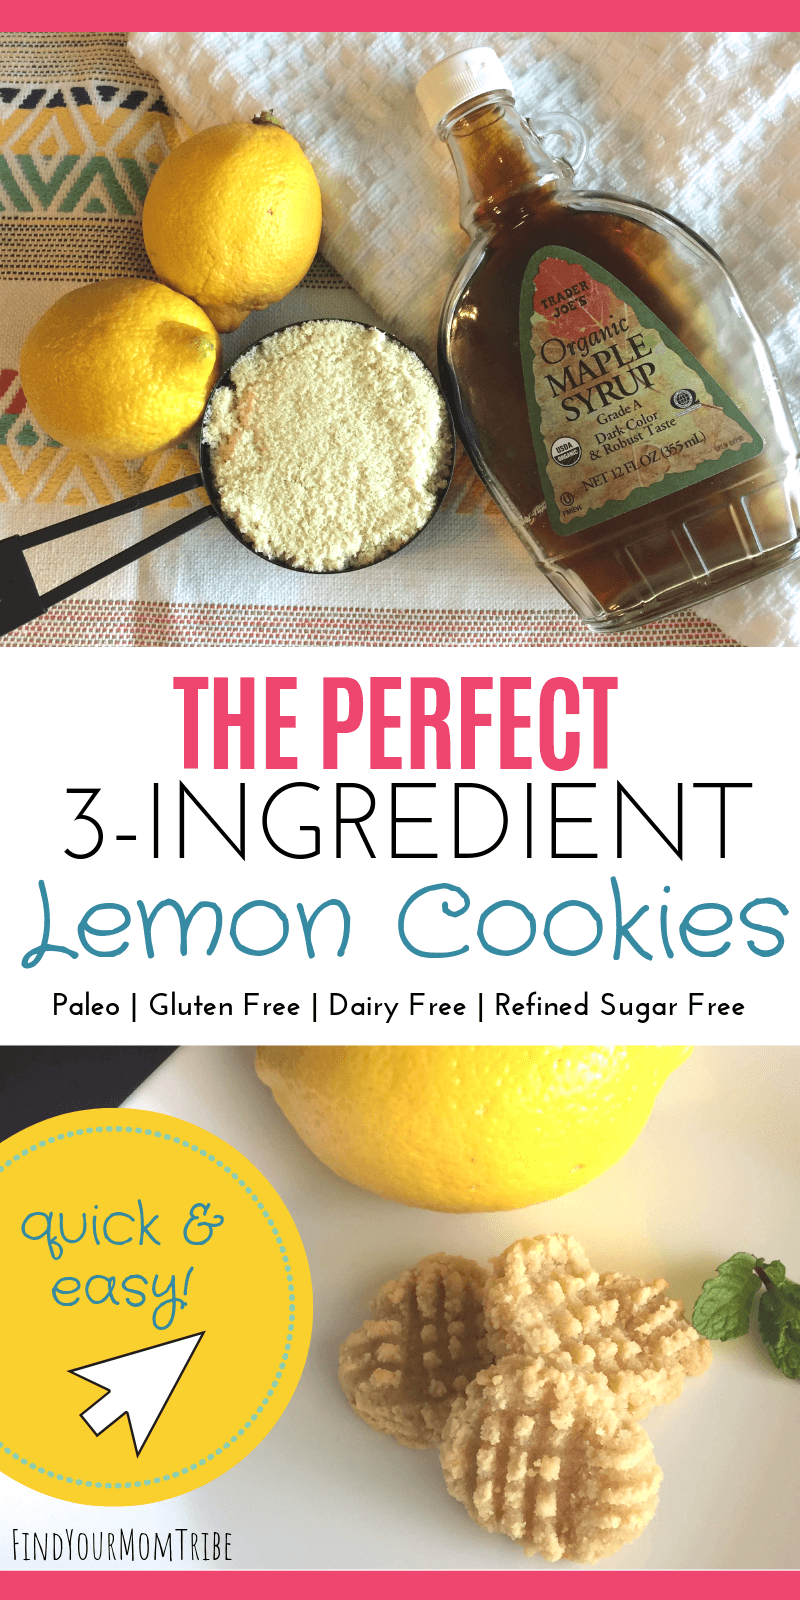 Buttery, soft, melt-in-your-mouth lemon cookies that are guilt-free! You'll be making this recipe again and again! With just 3 ingredients, these lemon cookies are easy to bake and you probably have everything you need in your pantry! They're also gluten free, paleo, clean eating, dairy free, egg free, and refined sugar free. Click through to see the full recipe! #lemoncookies #paleo #findyourmomtribe